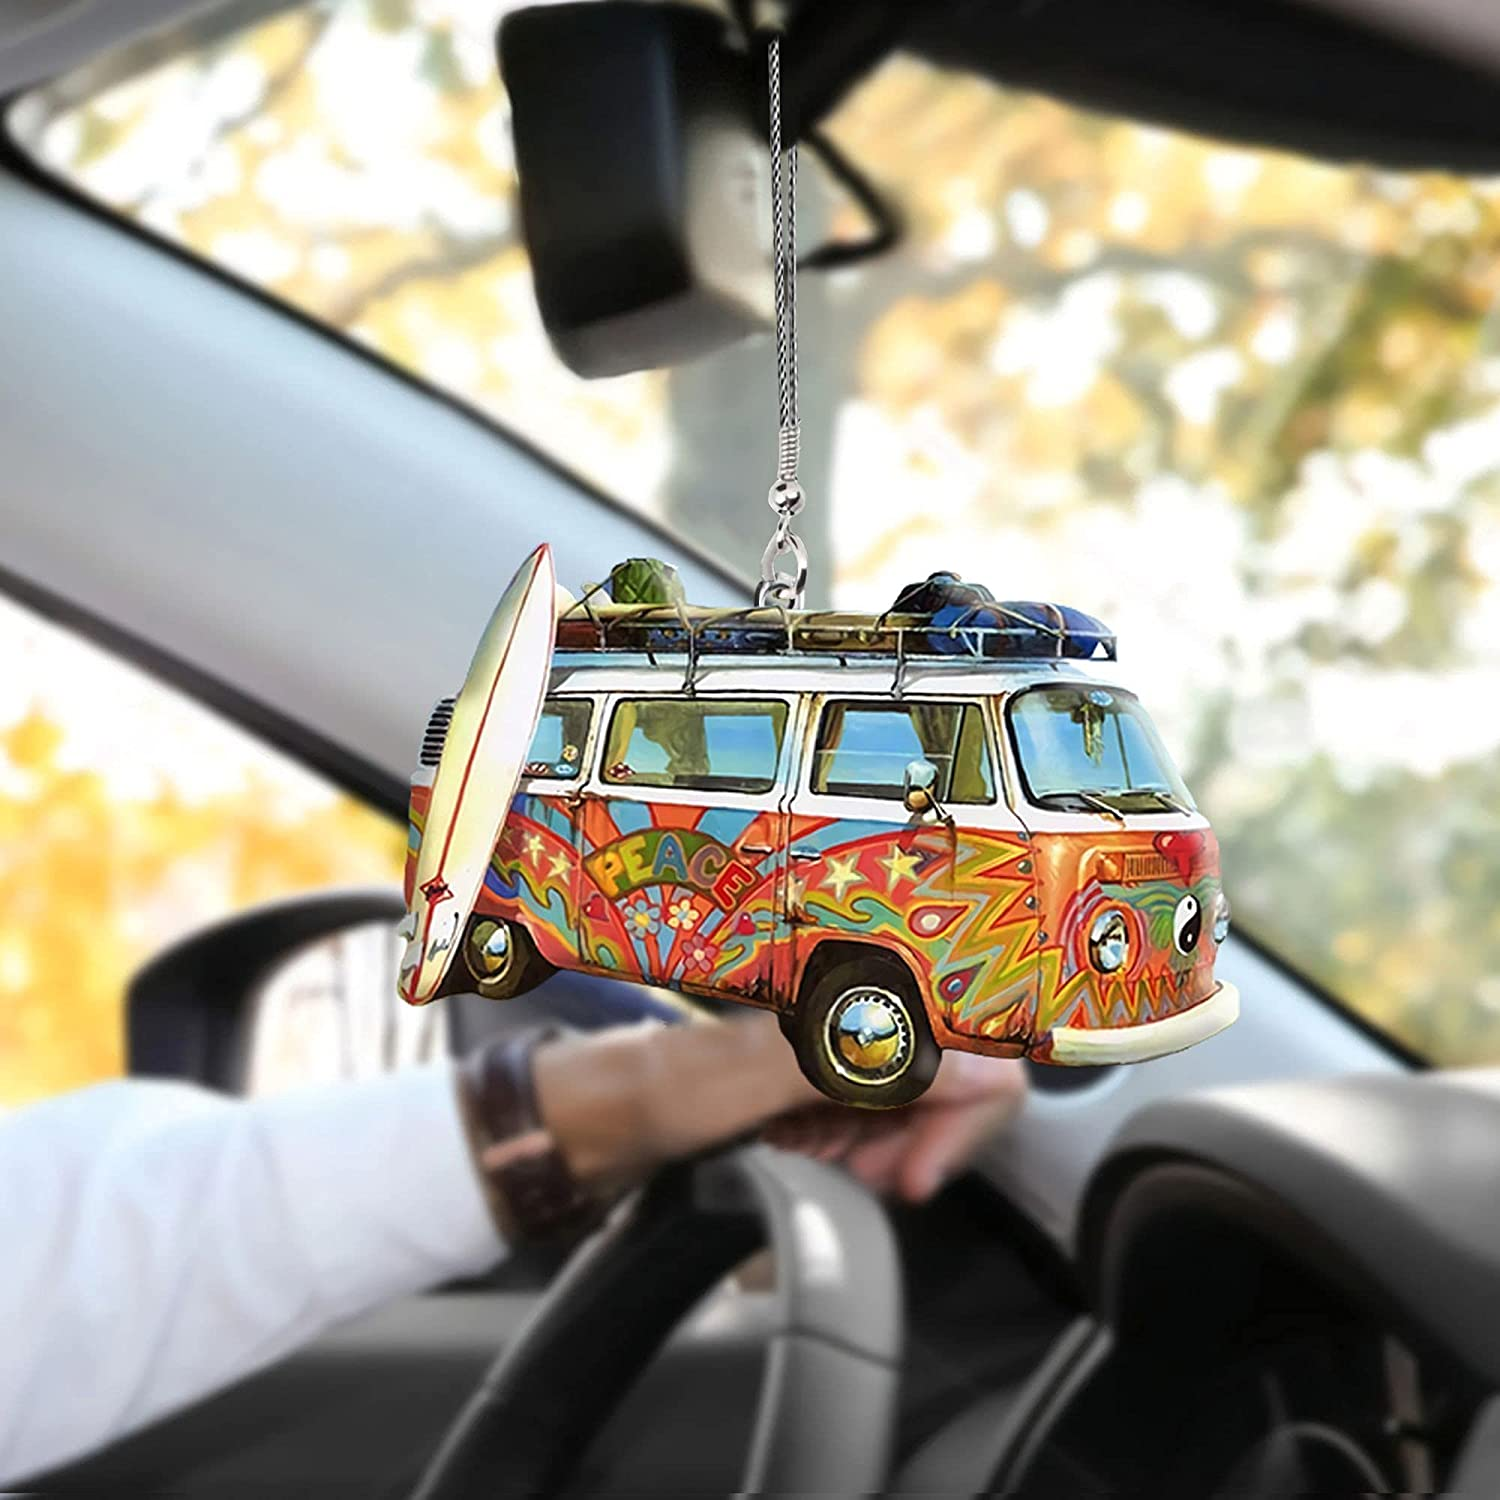 Surfboard Max 84% OFF with Camping Vans trend rank Car Ornament PCS Hanging 10